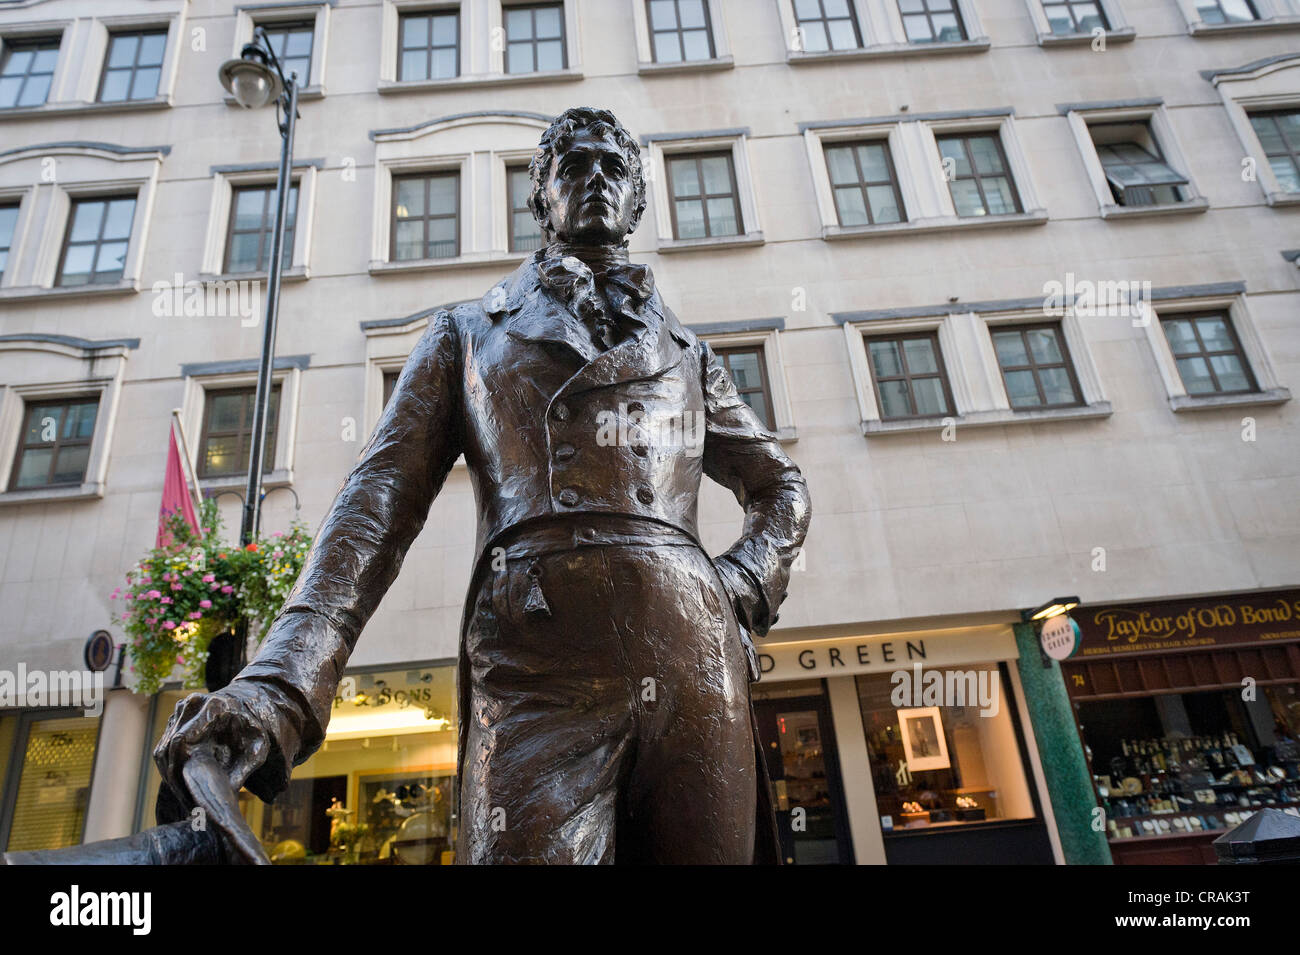 Statue of Dandy Beau Brummell, London, England, United Kingdom, Europe - Stock Image